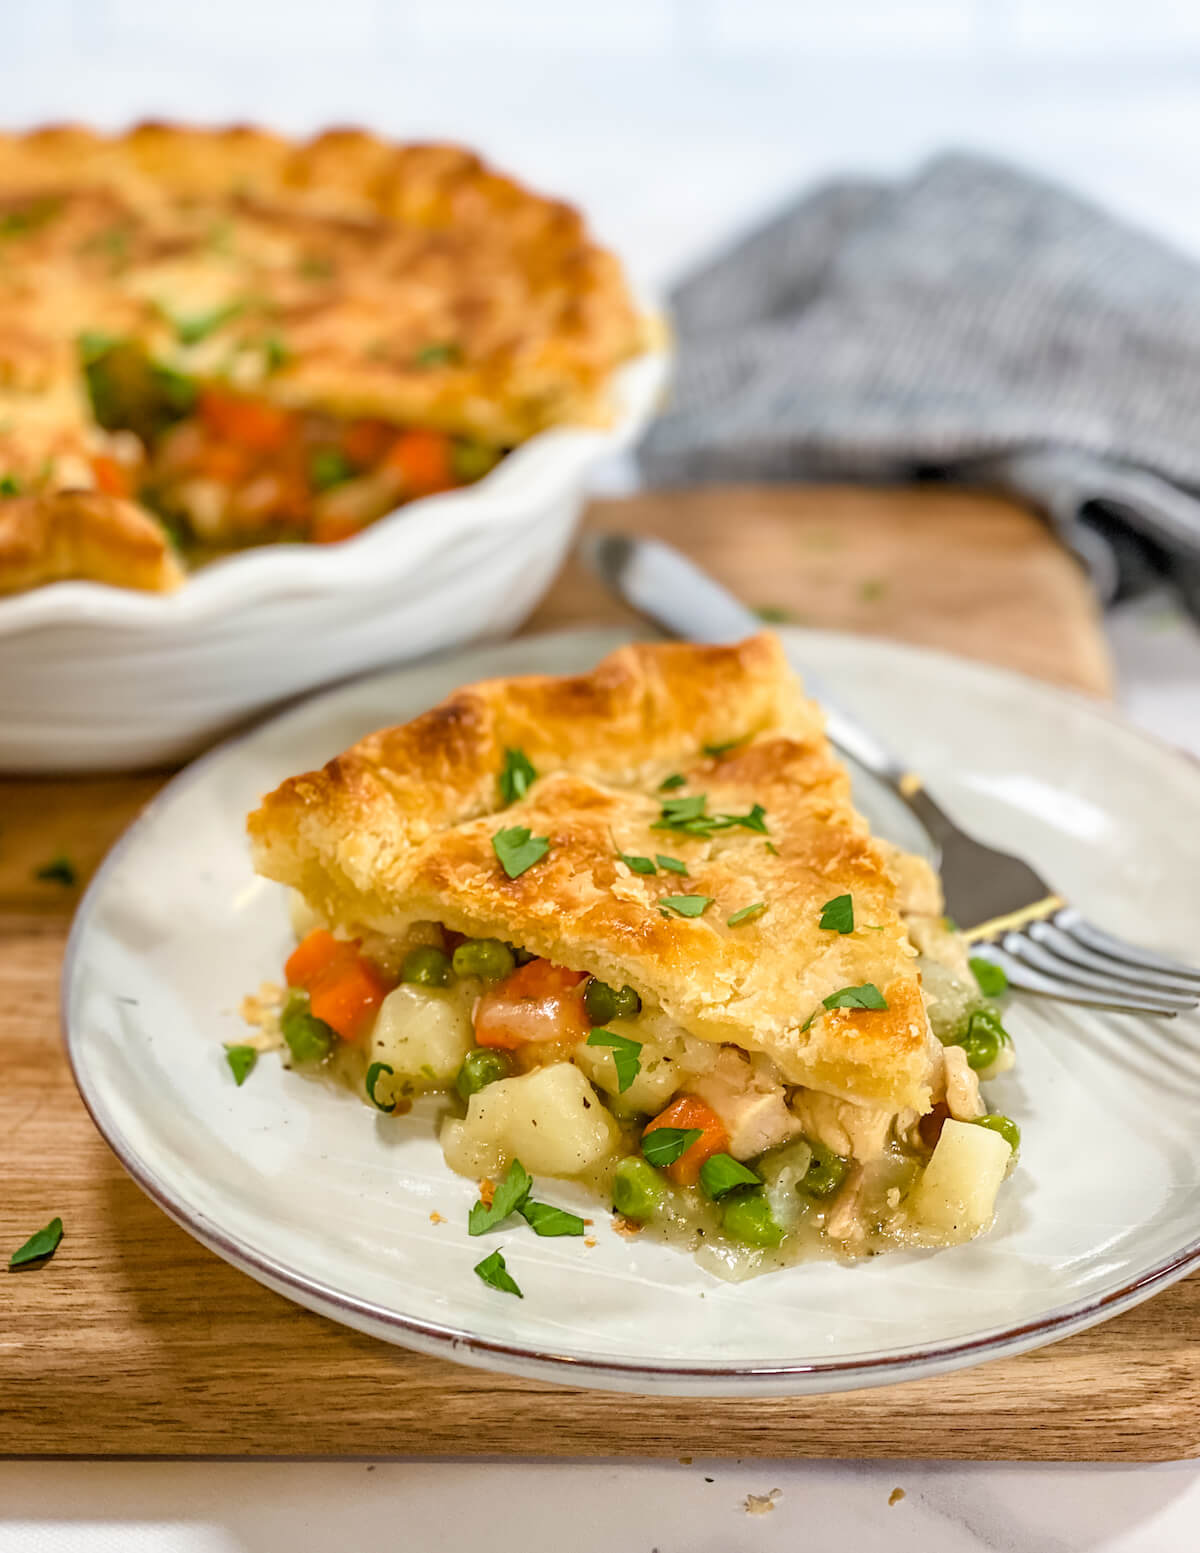 slice of homemade turkey pot pie on a plate with parsley